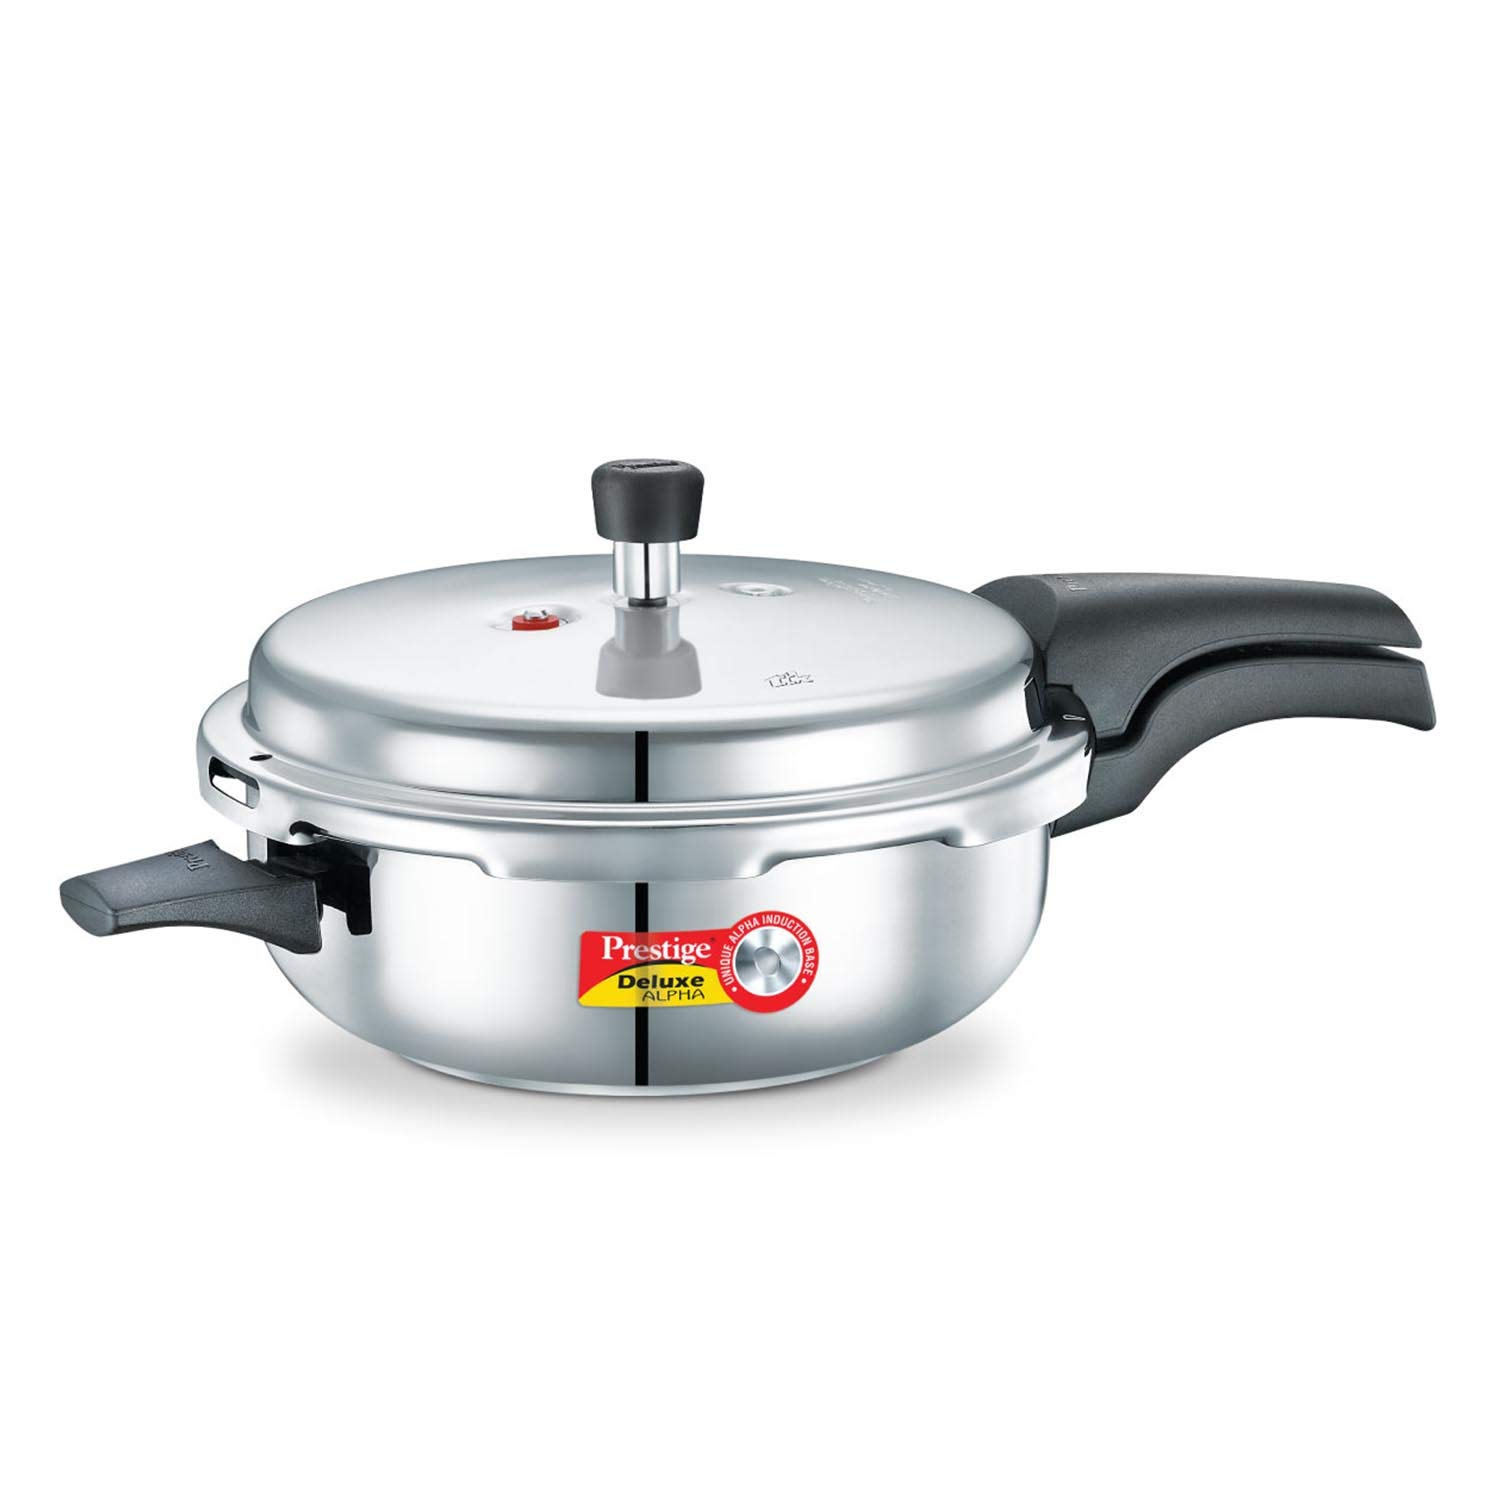 Prestige PRDASP Deluxe Alpha Induction Base Pressure Pan, Senior, Stainless Steel